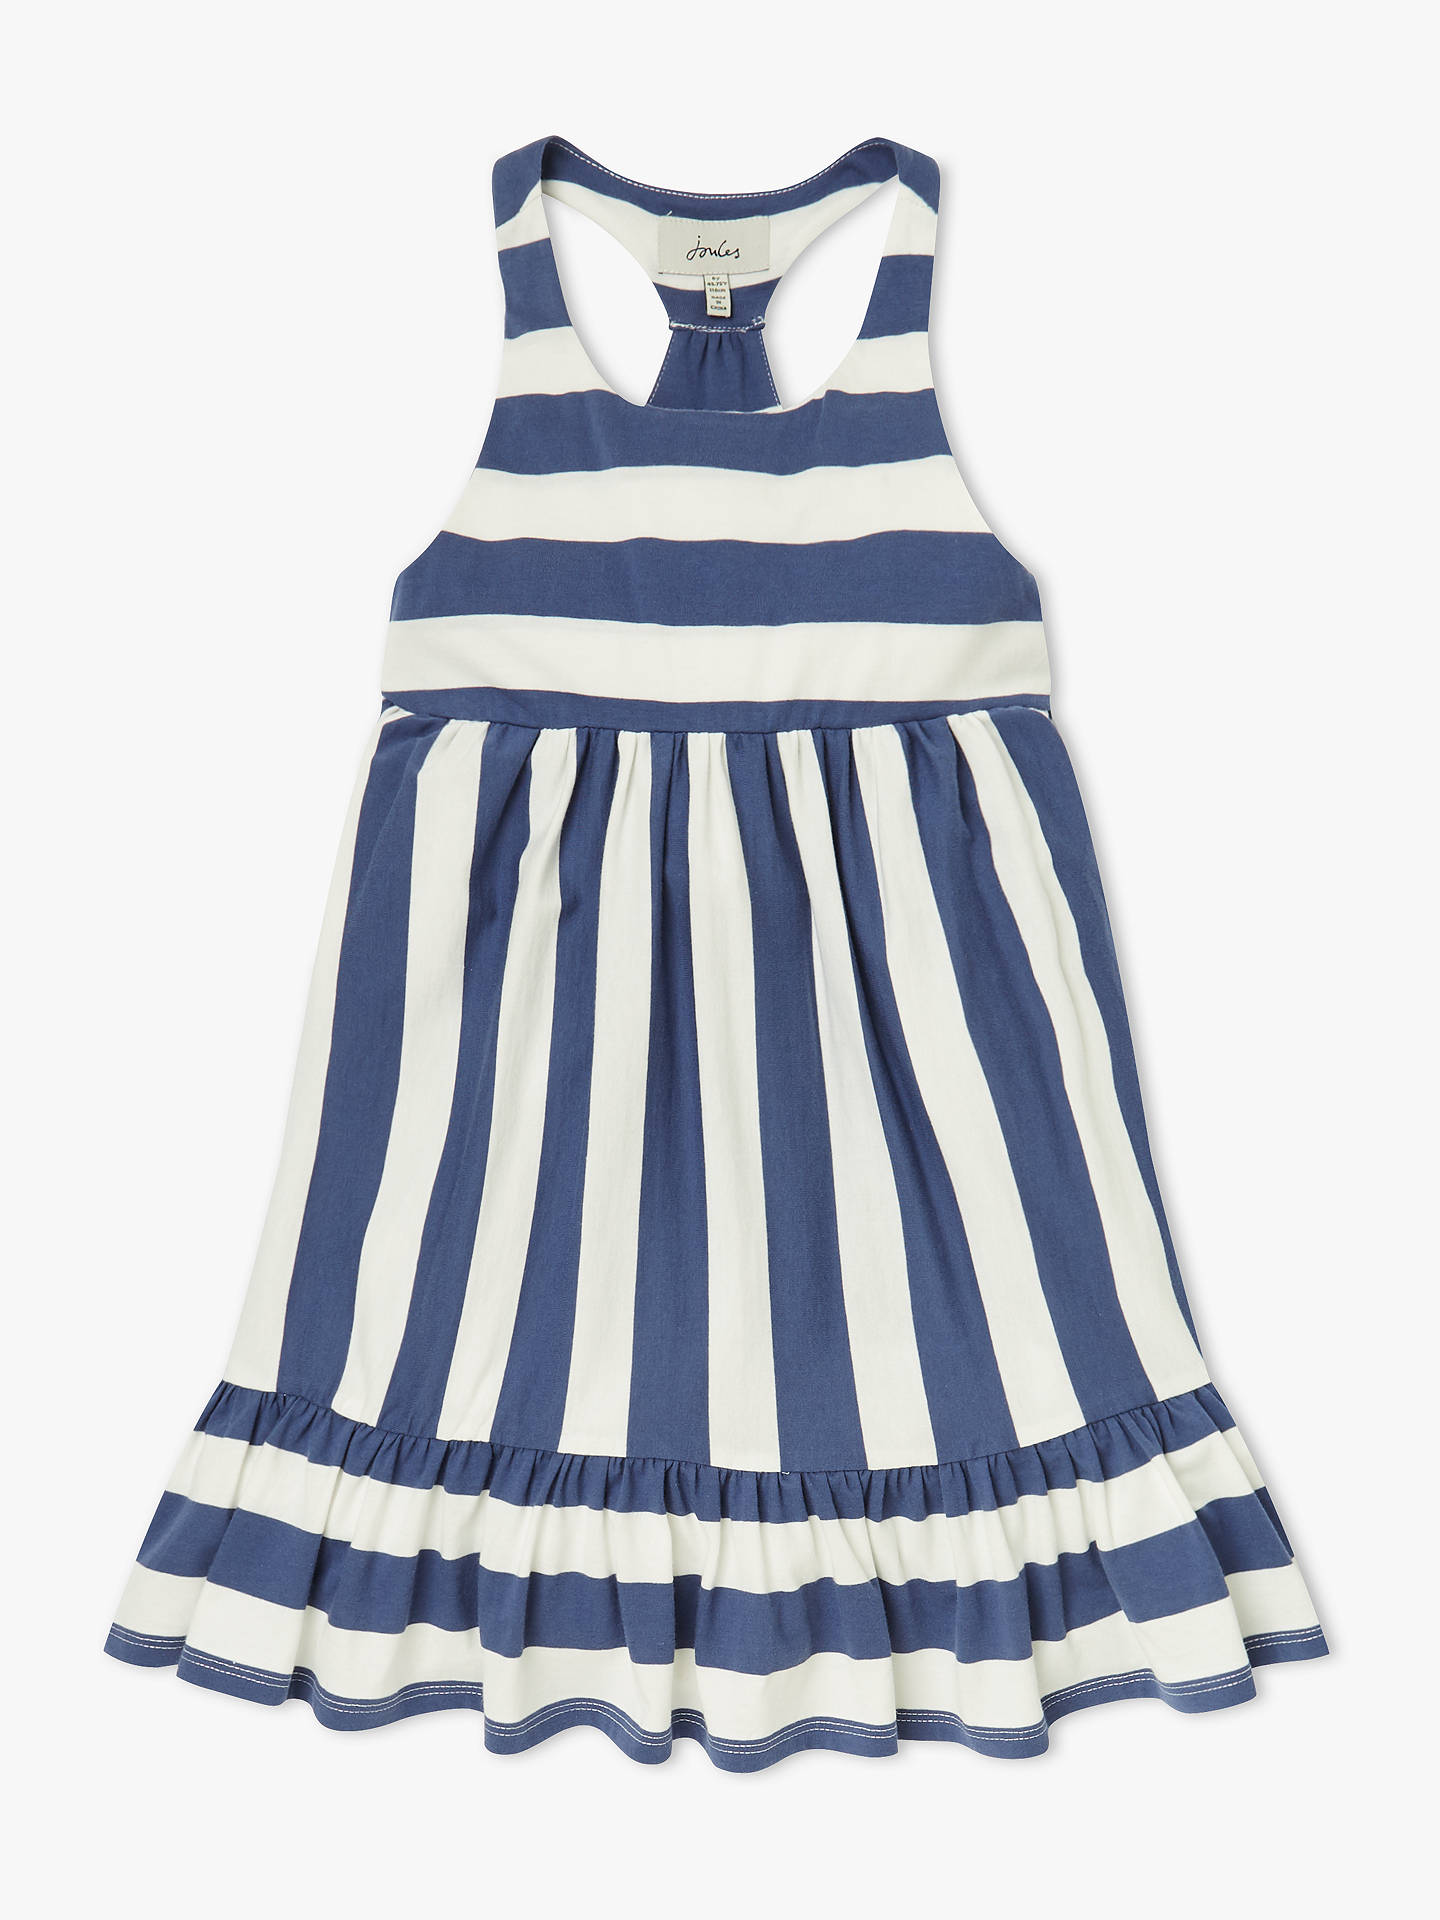 5b1061f2643d ... Buy Little Joules Girls' Juno Peplum Midi Dress, White/Blue, 4 years